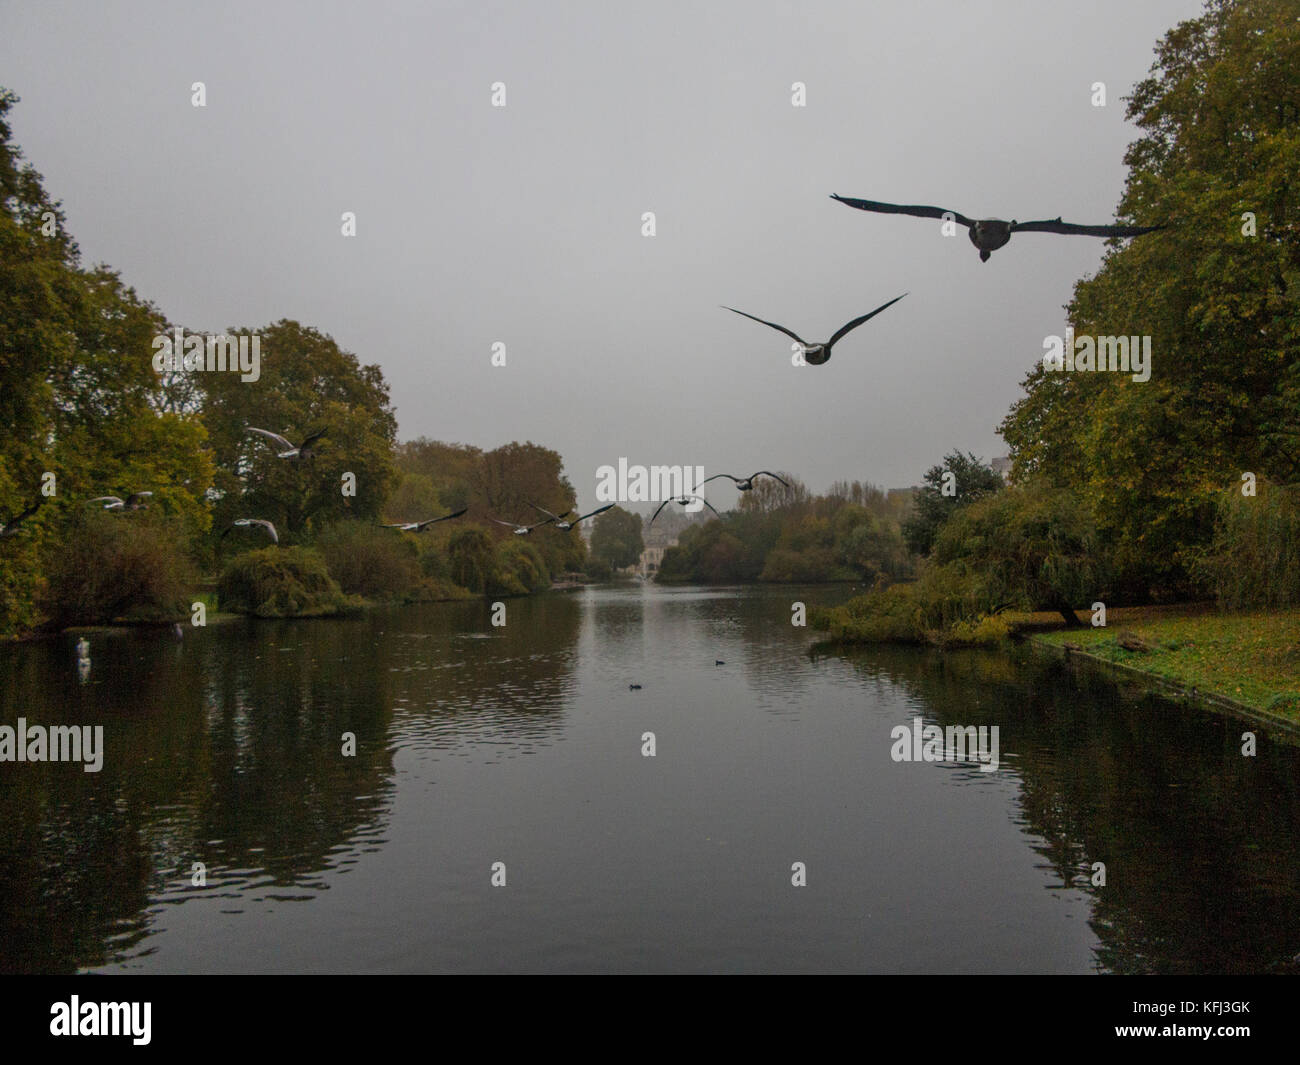 A gaggle of Geese flies over the lake in St James Park in V formation in London - Stock Image